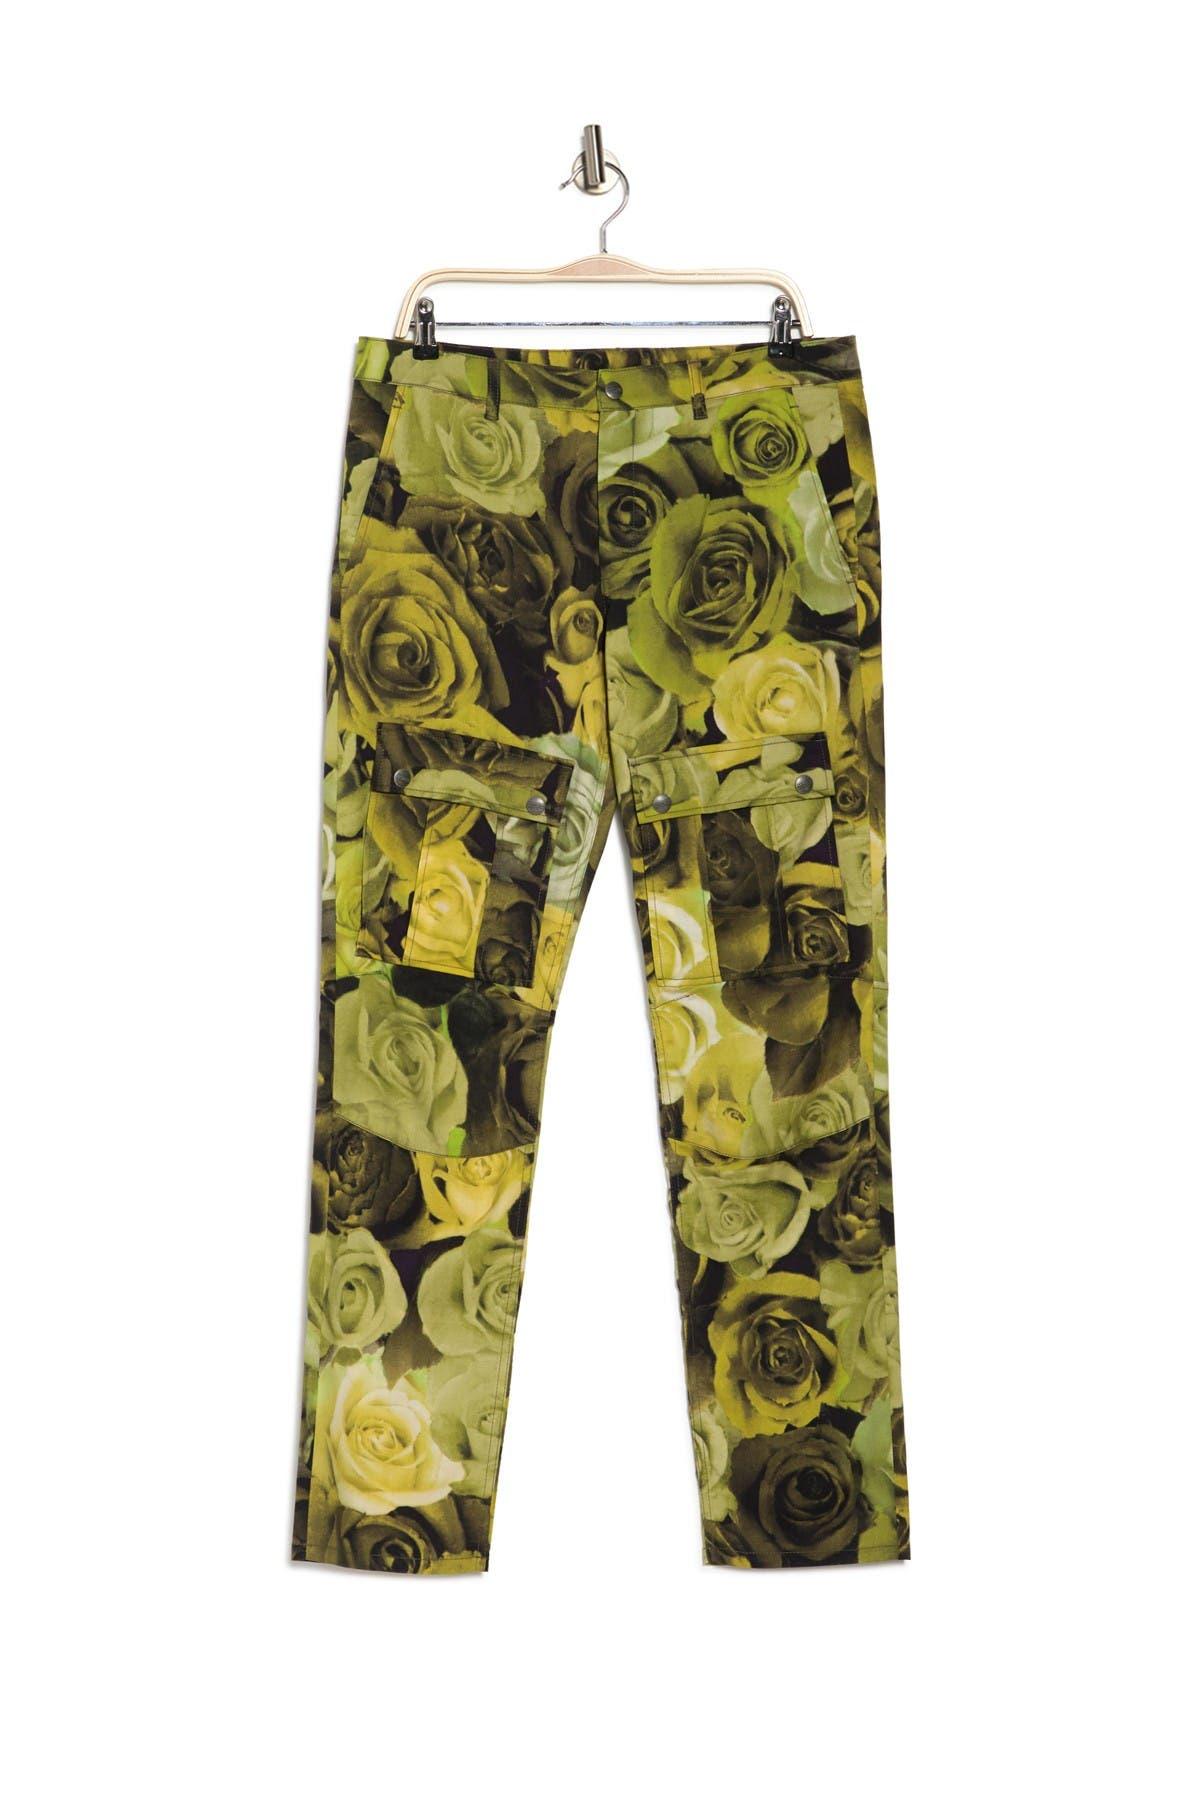 Image of MOSCHINO Rose Printed Cargo Pants